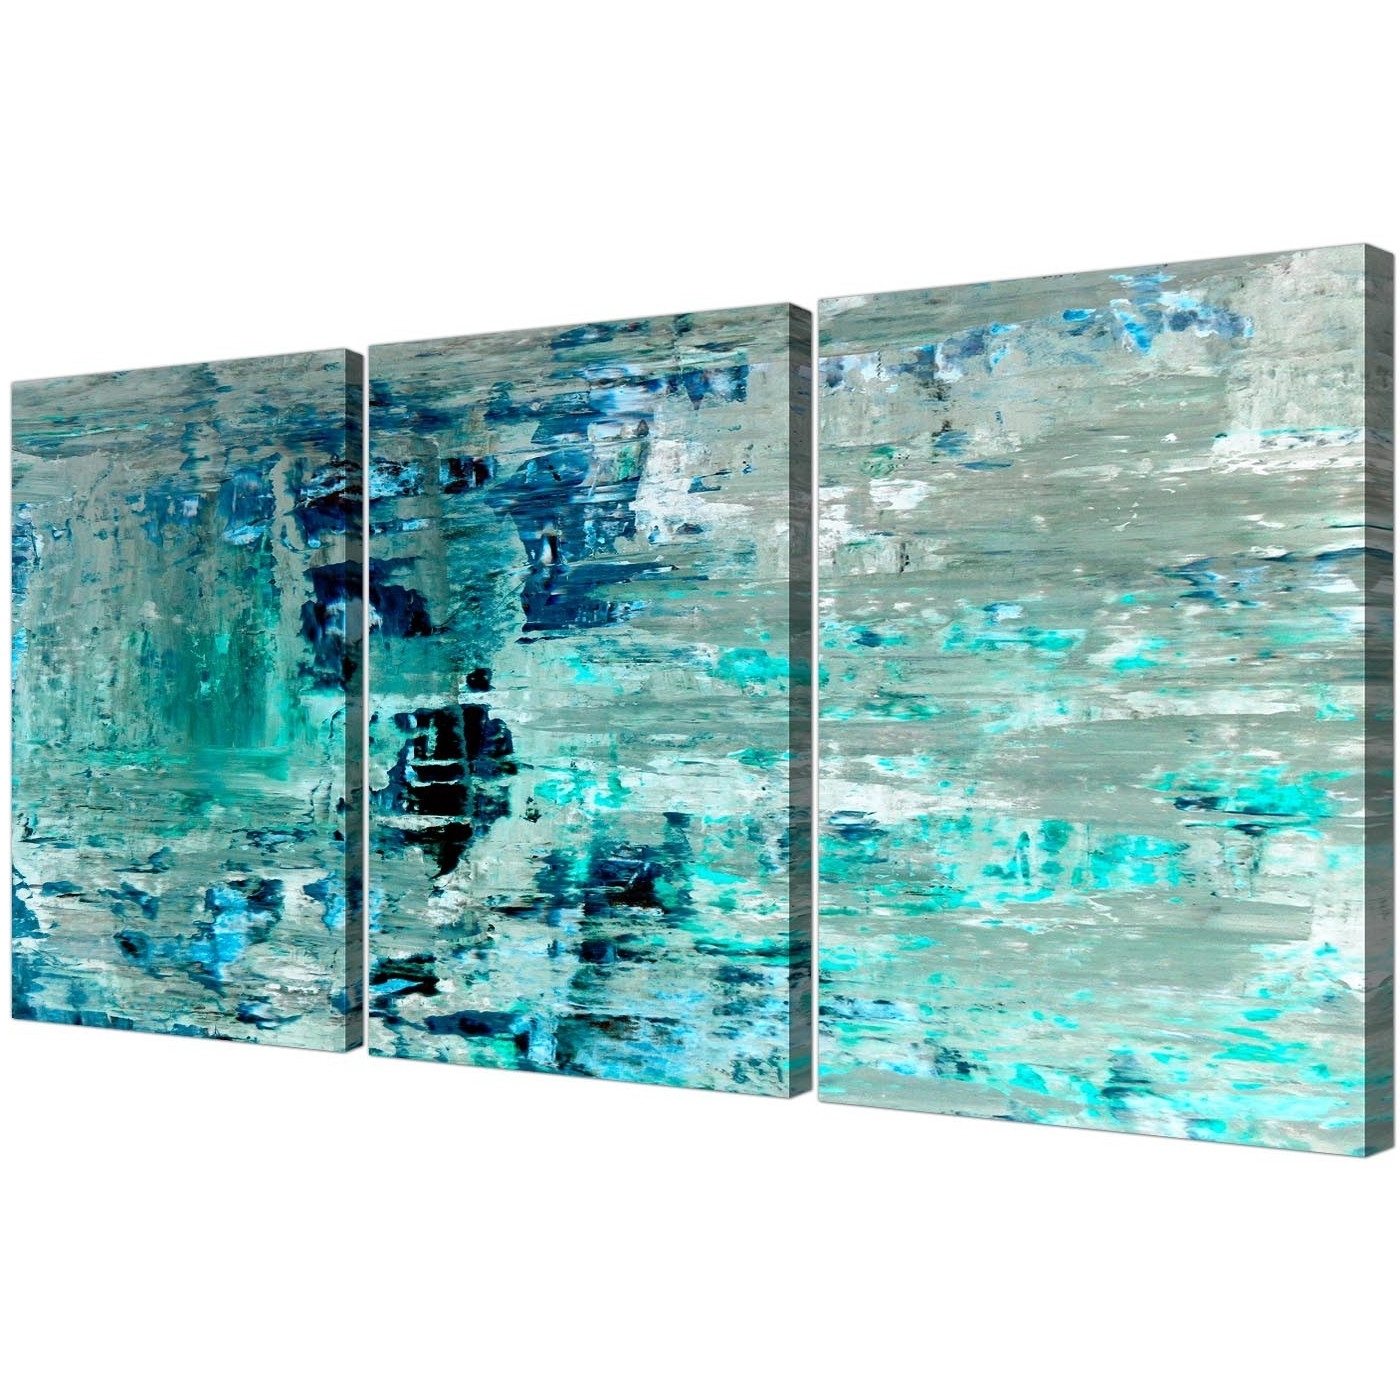 Teal Wall Art Regarding Latest Turquoise Teal Abstract Painting Wall Art Print Canvas – Multi (View 2 of 15)